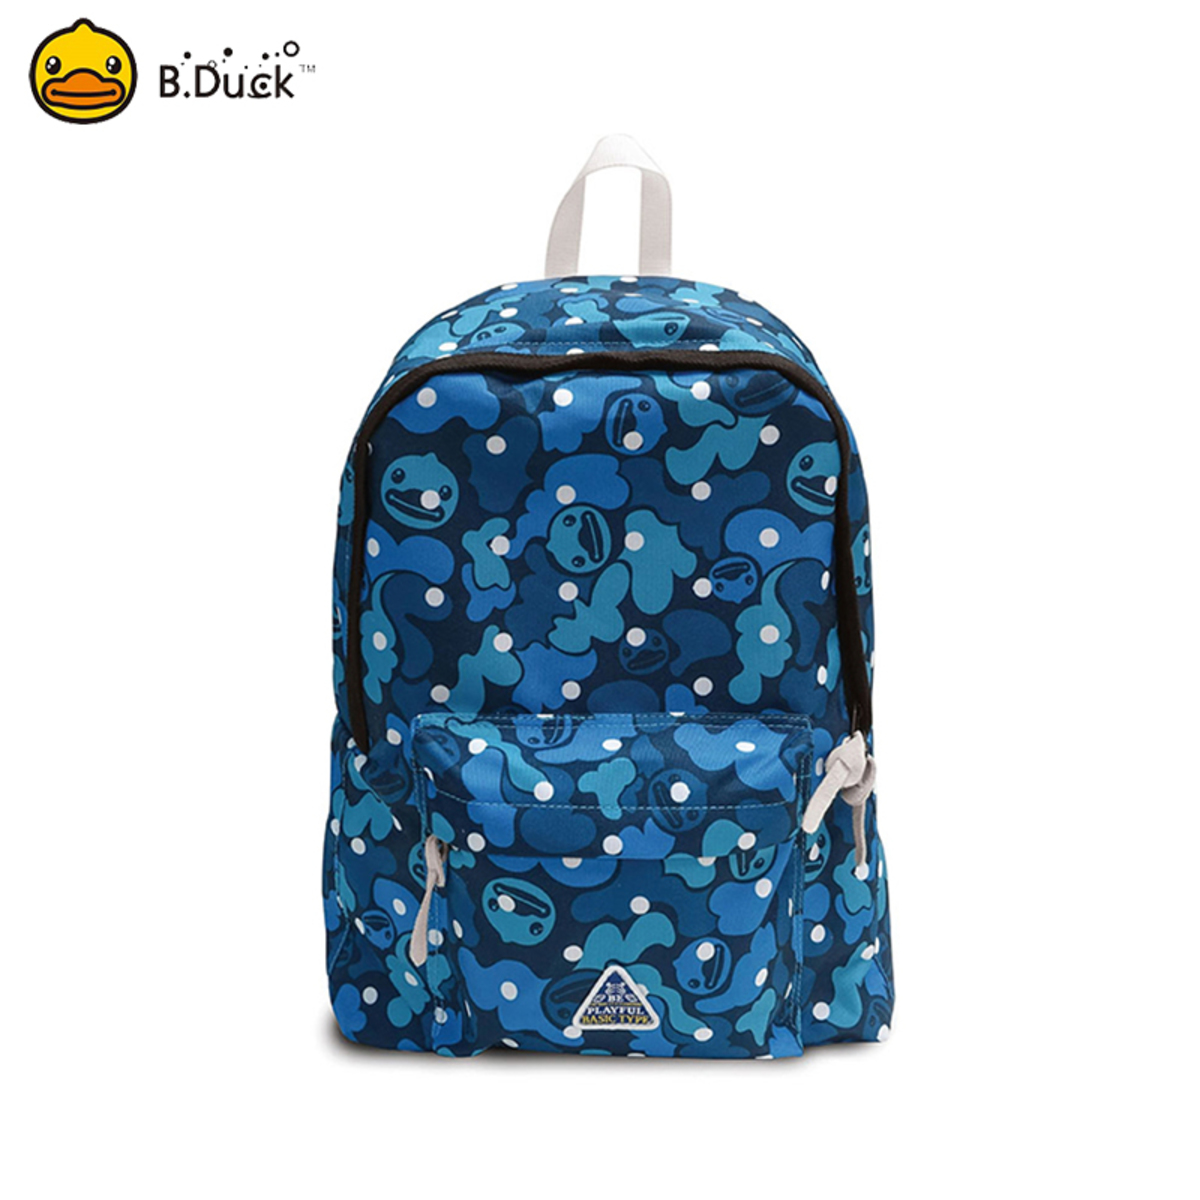 B.Duck Mountaineering Backpack (Navy Camouflage)